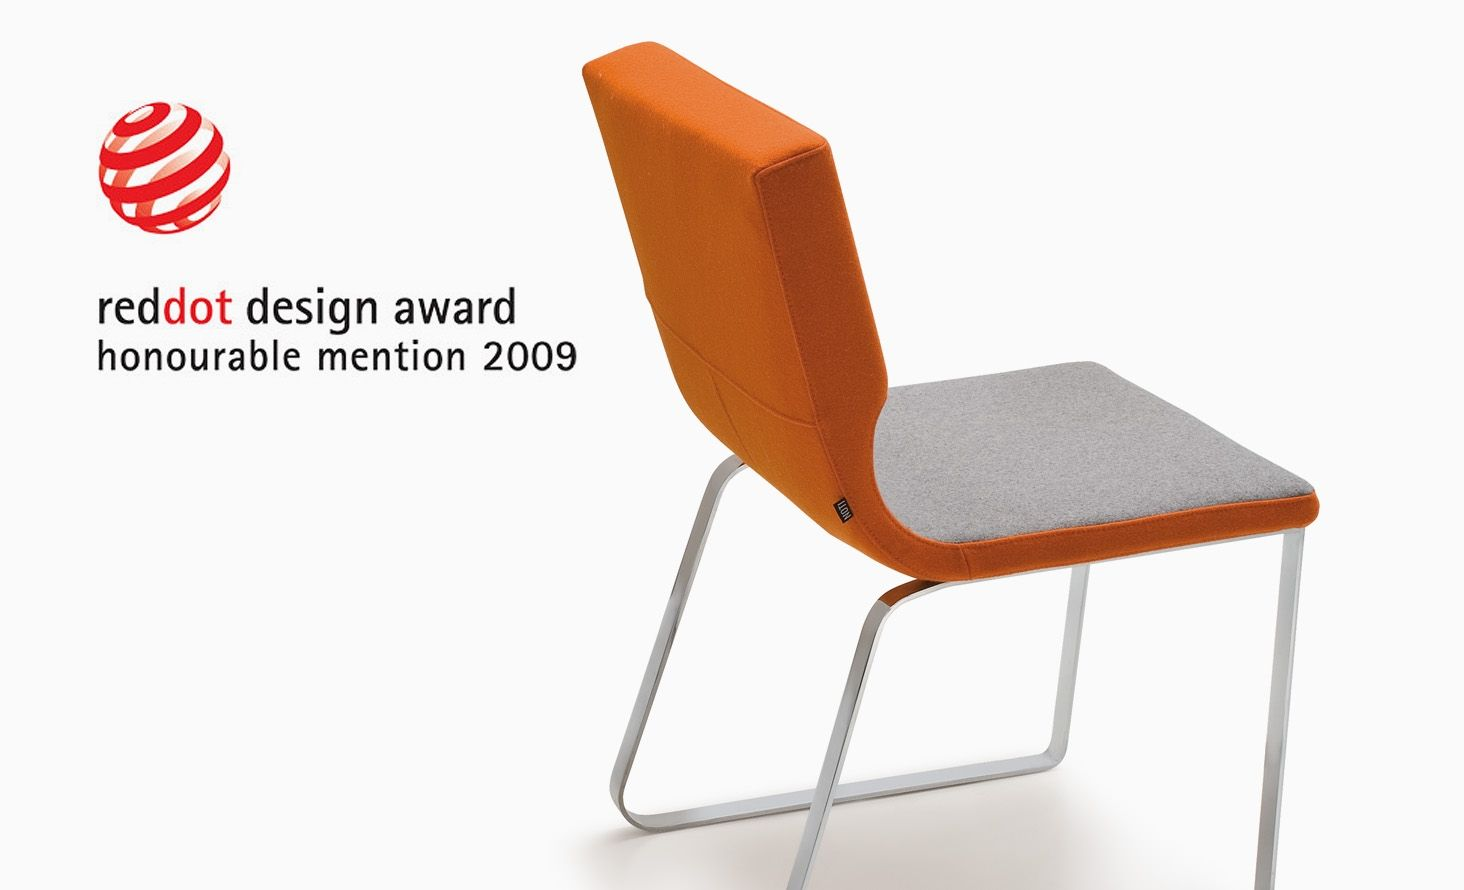 Couchtisch Red Dot Noti Comma Renatakalarus Reddot Award Chair Noti Design